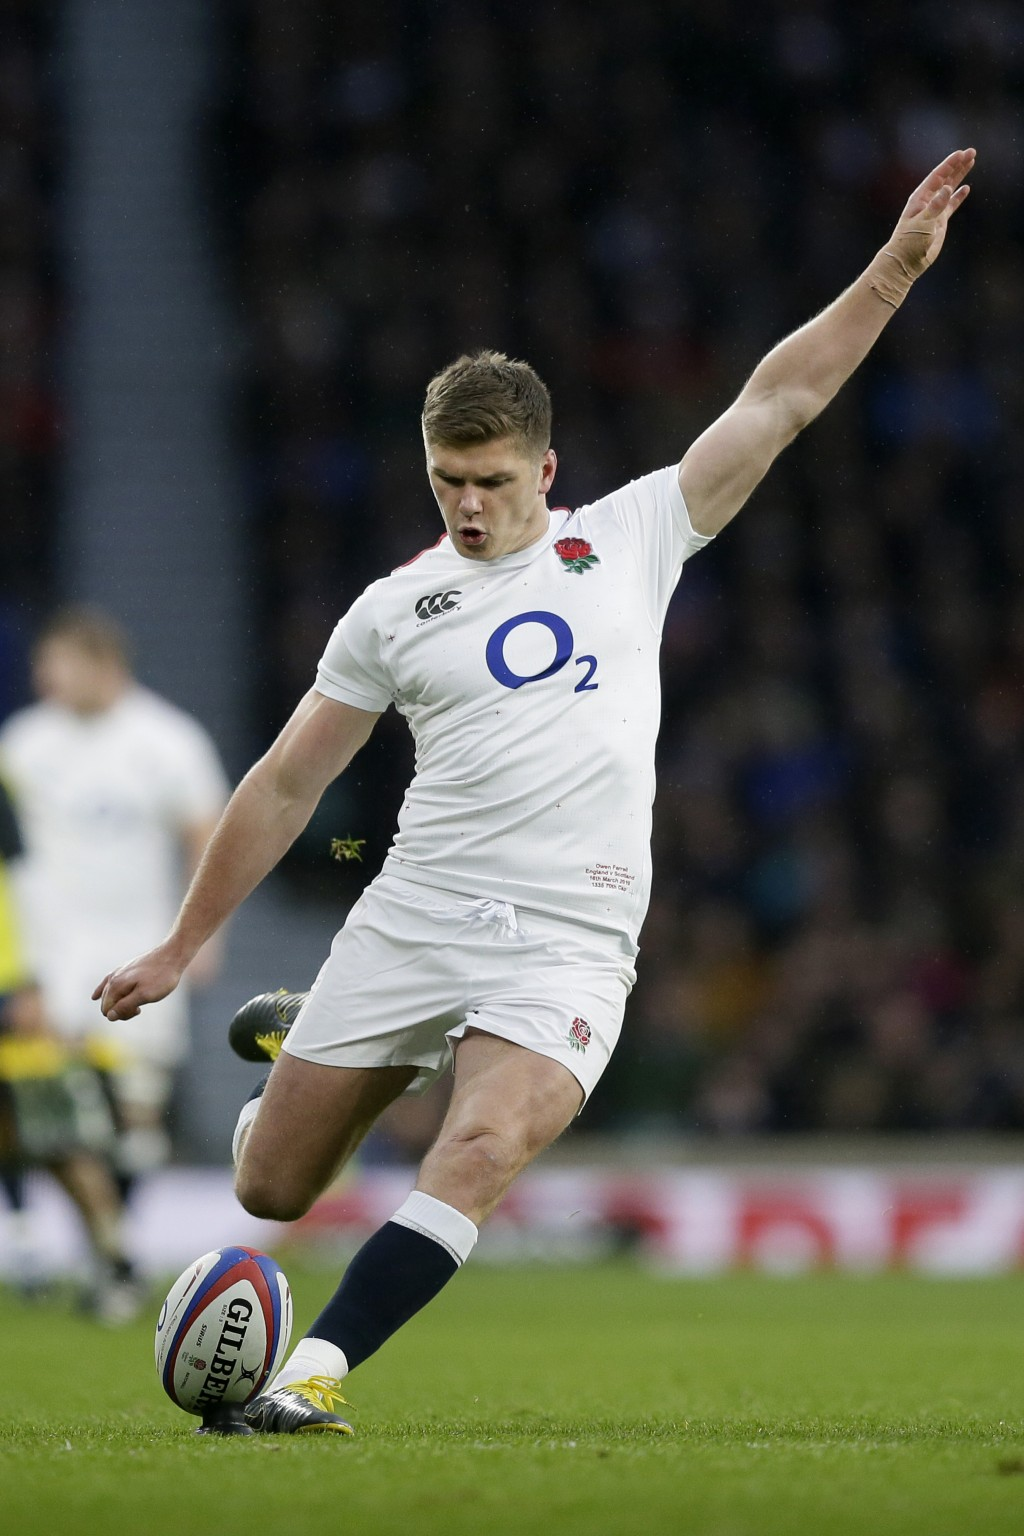 FILE - In this March 16, 2019, file photo, England's Owen Farrell takes a shot at goal during the Six Nations rugby union international between Englan